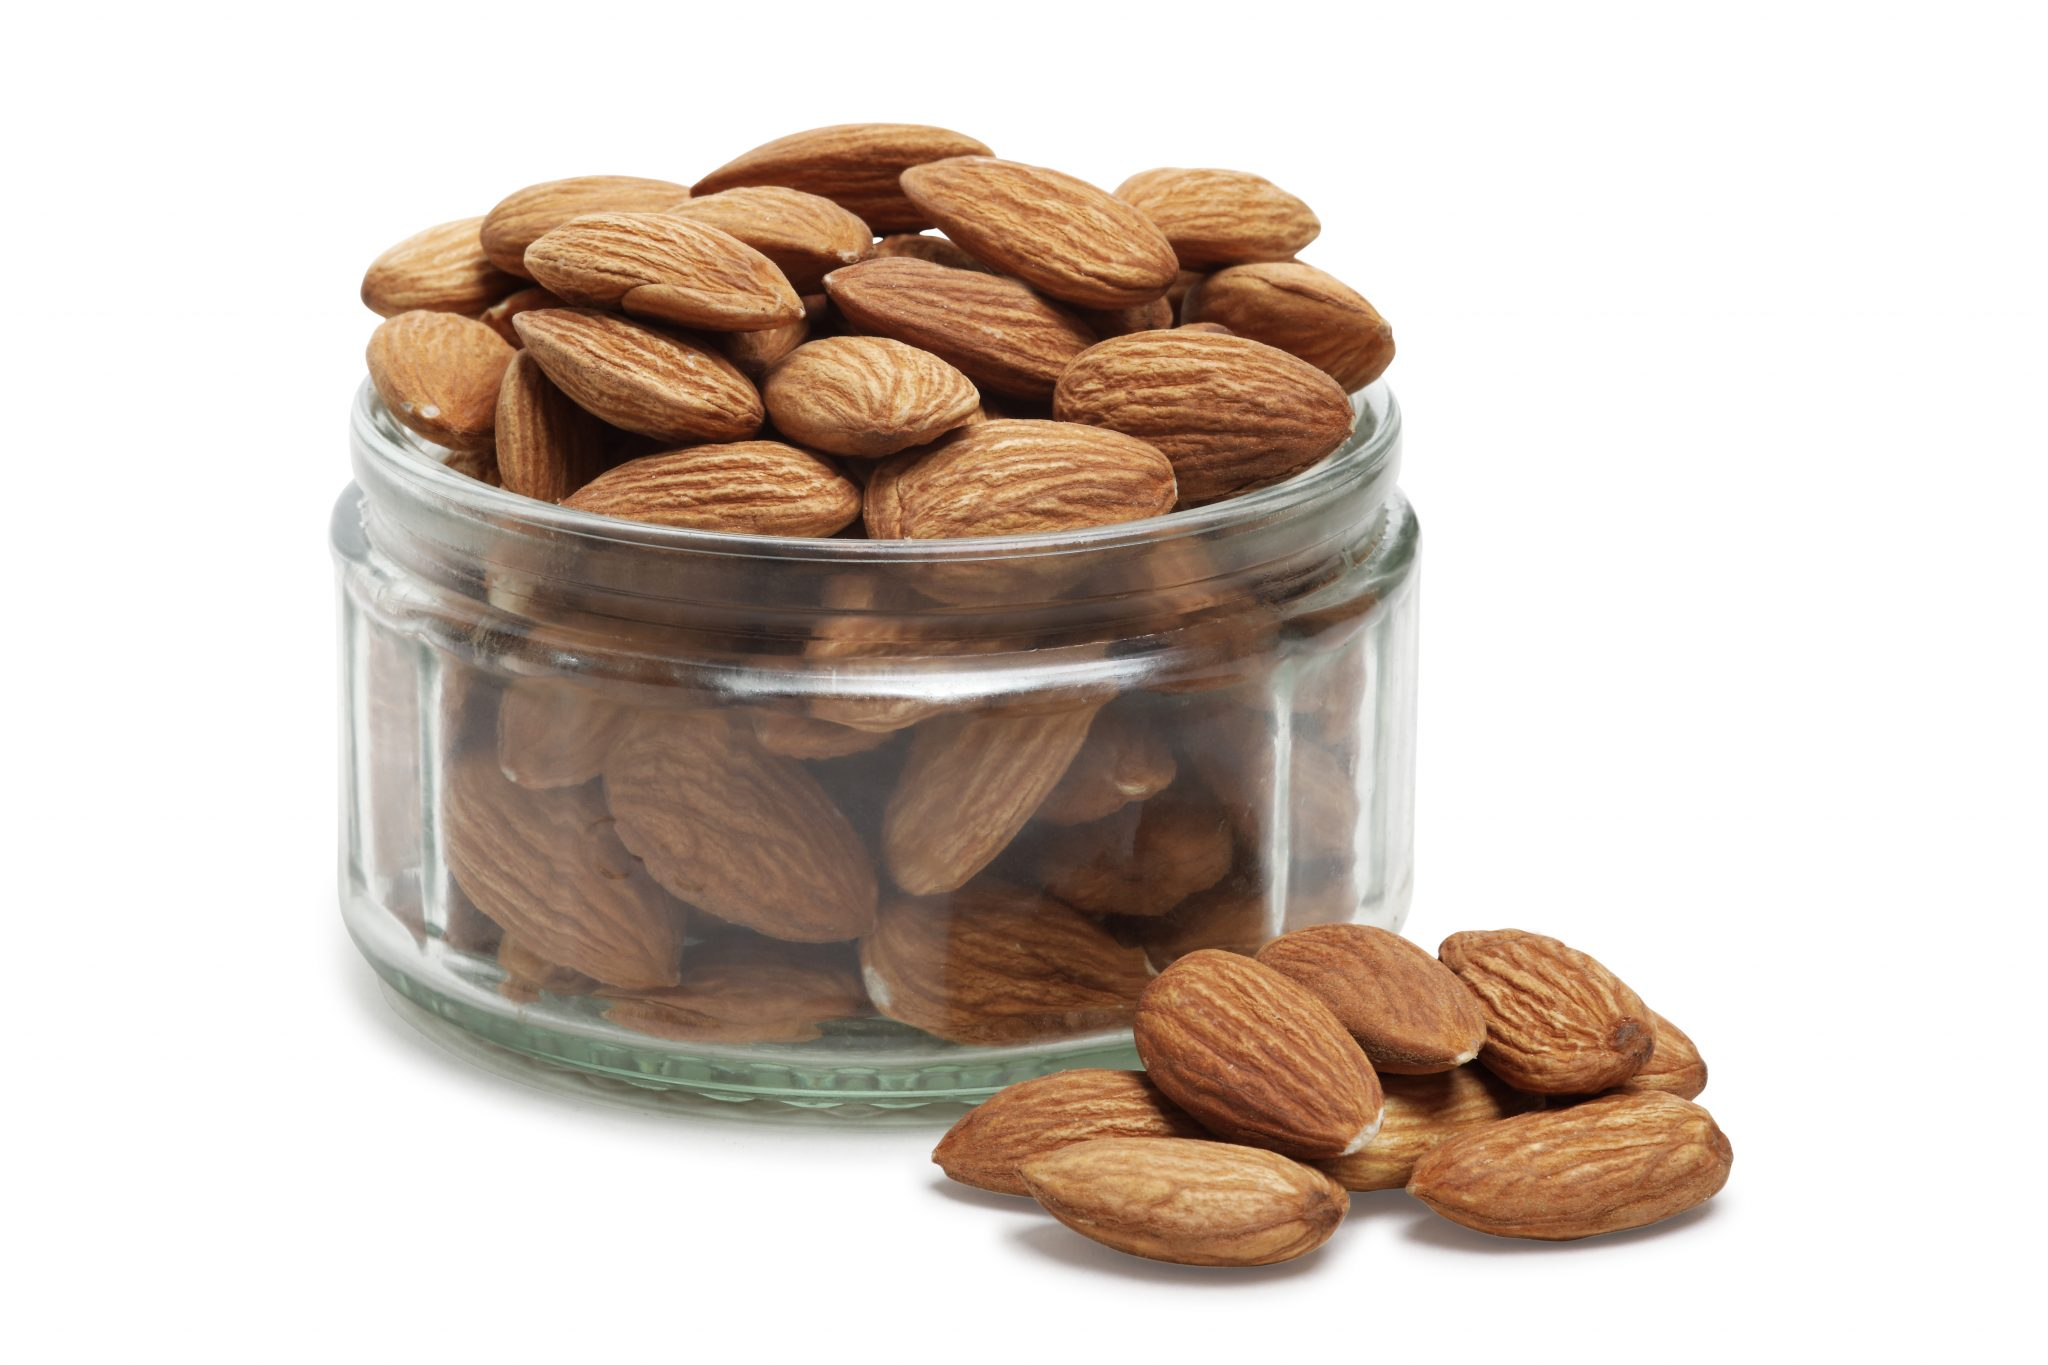 chandras healthy vegan snack almonds in a glass